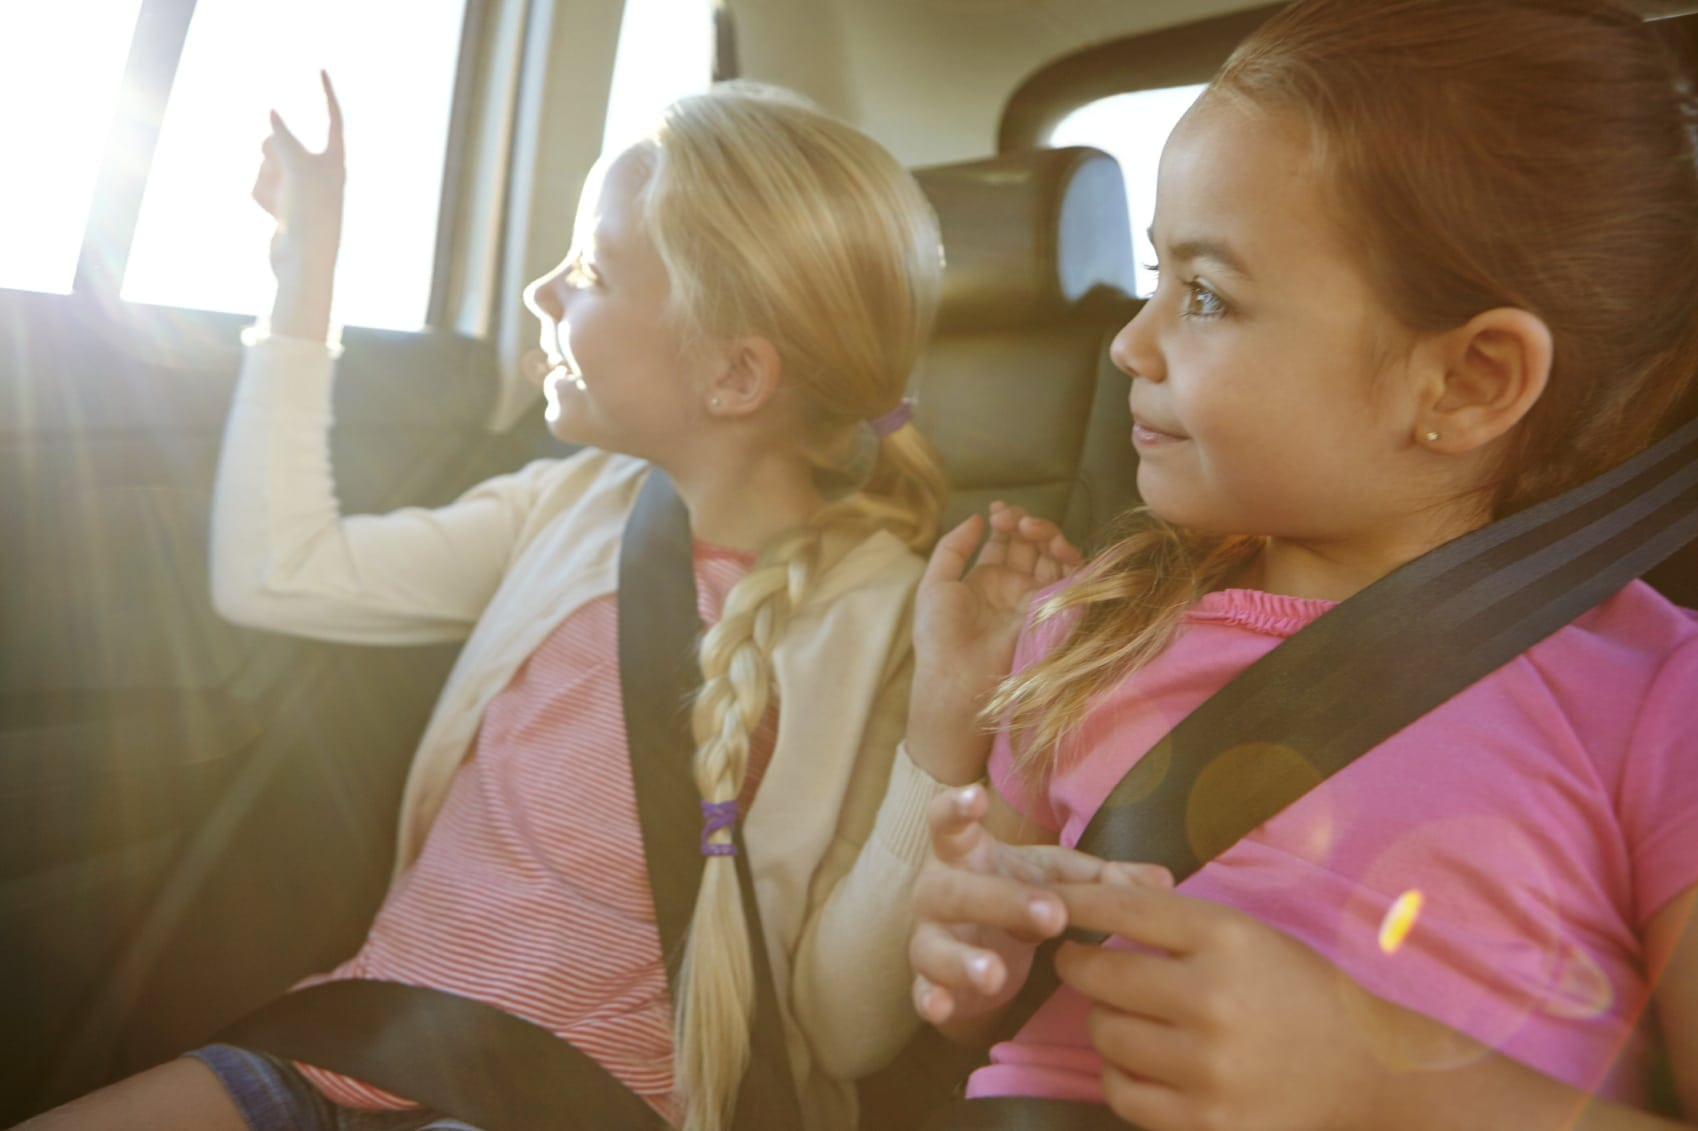 Young Children Sitting In The Backseat Of A Vehicle Stock Photo